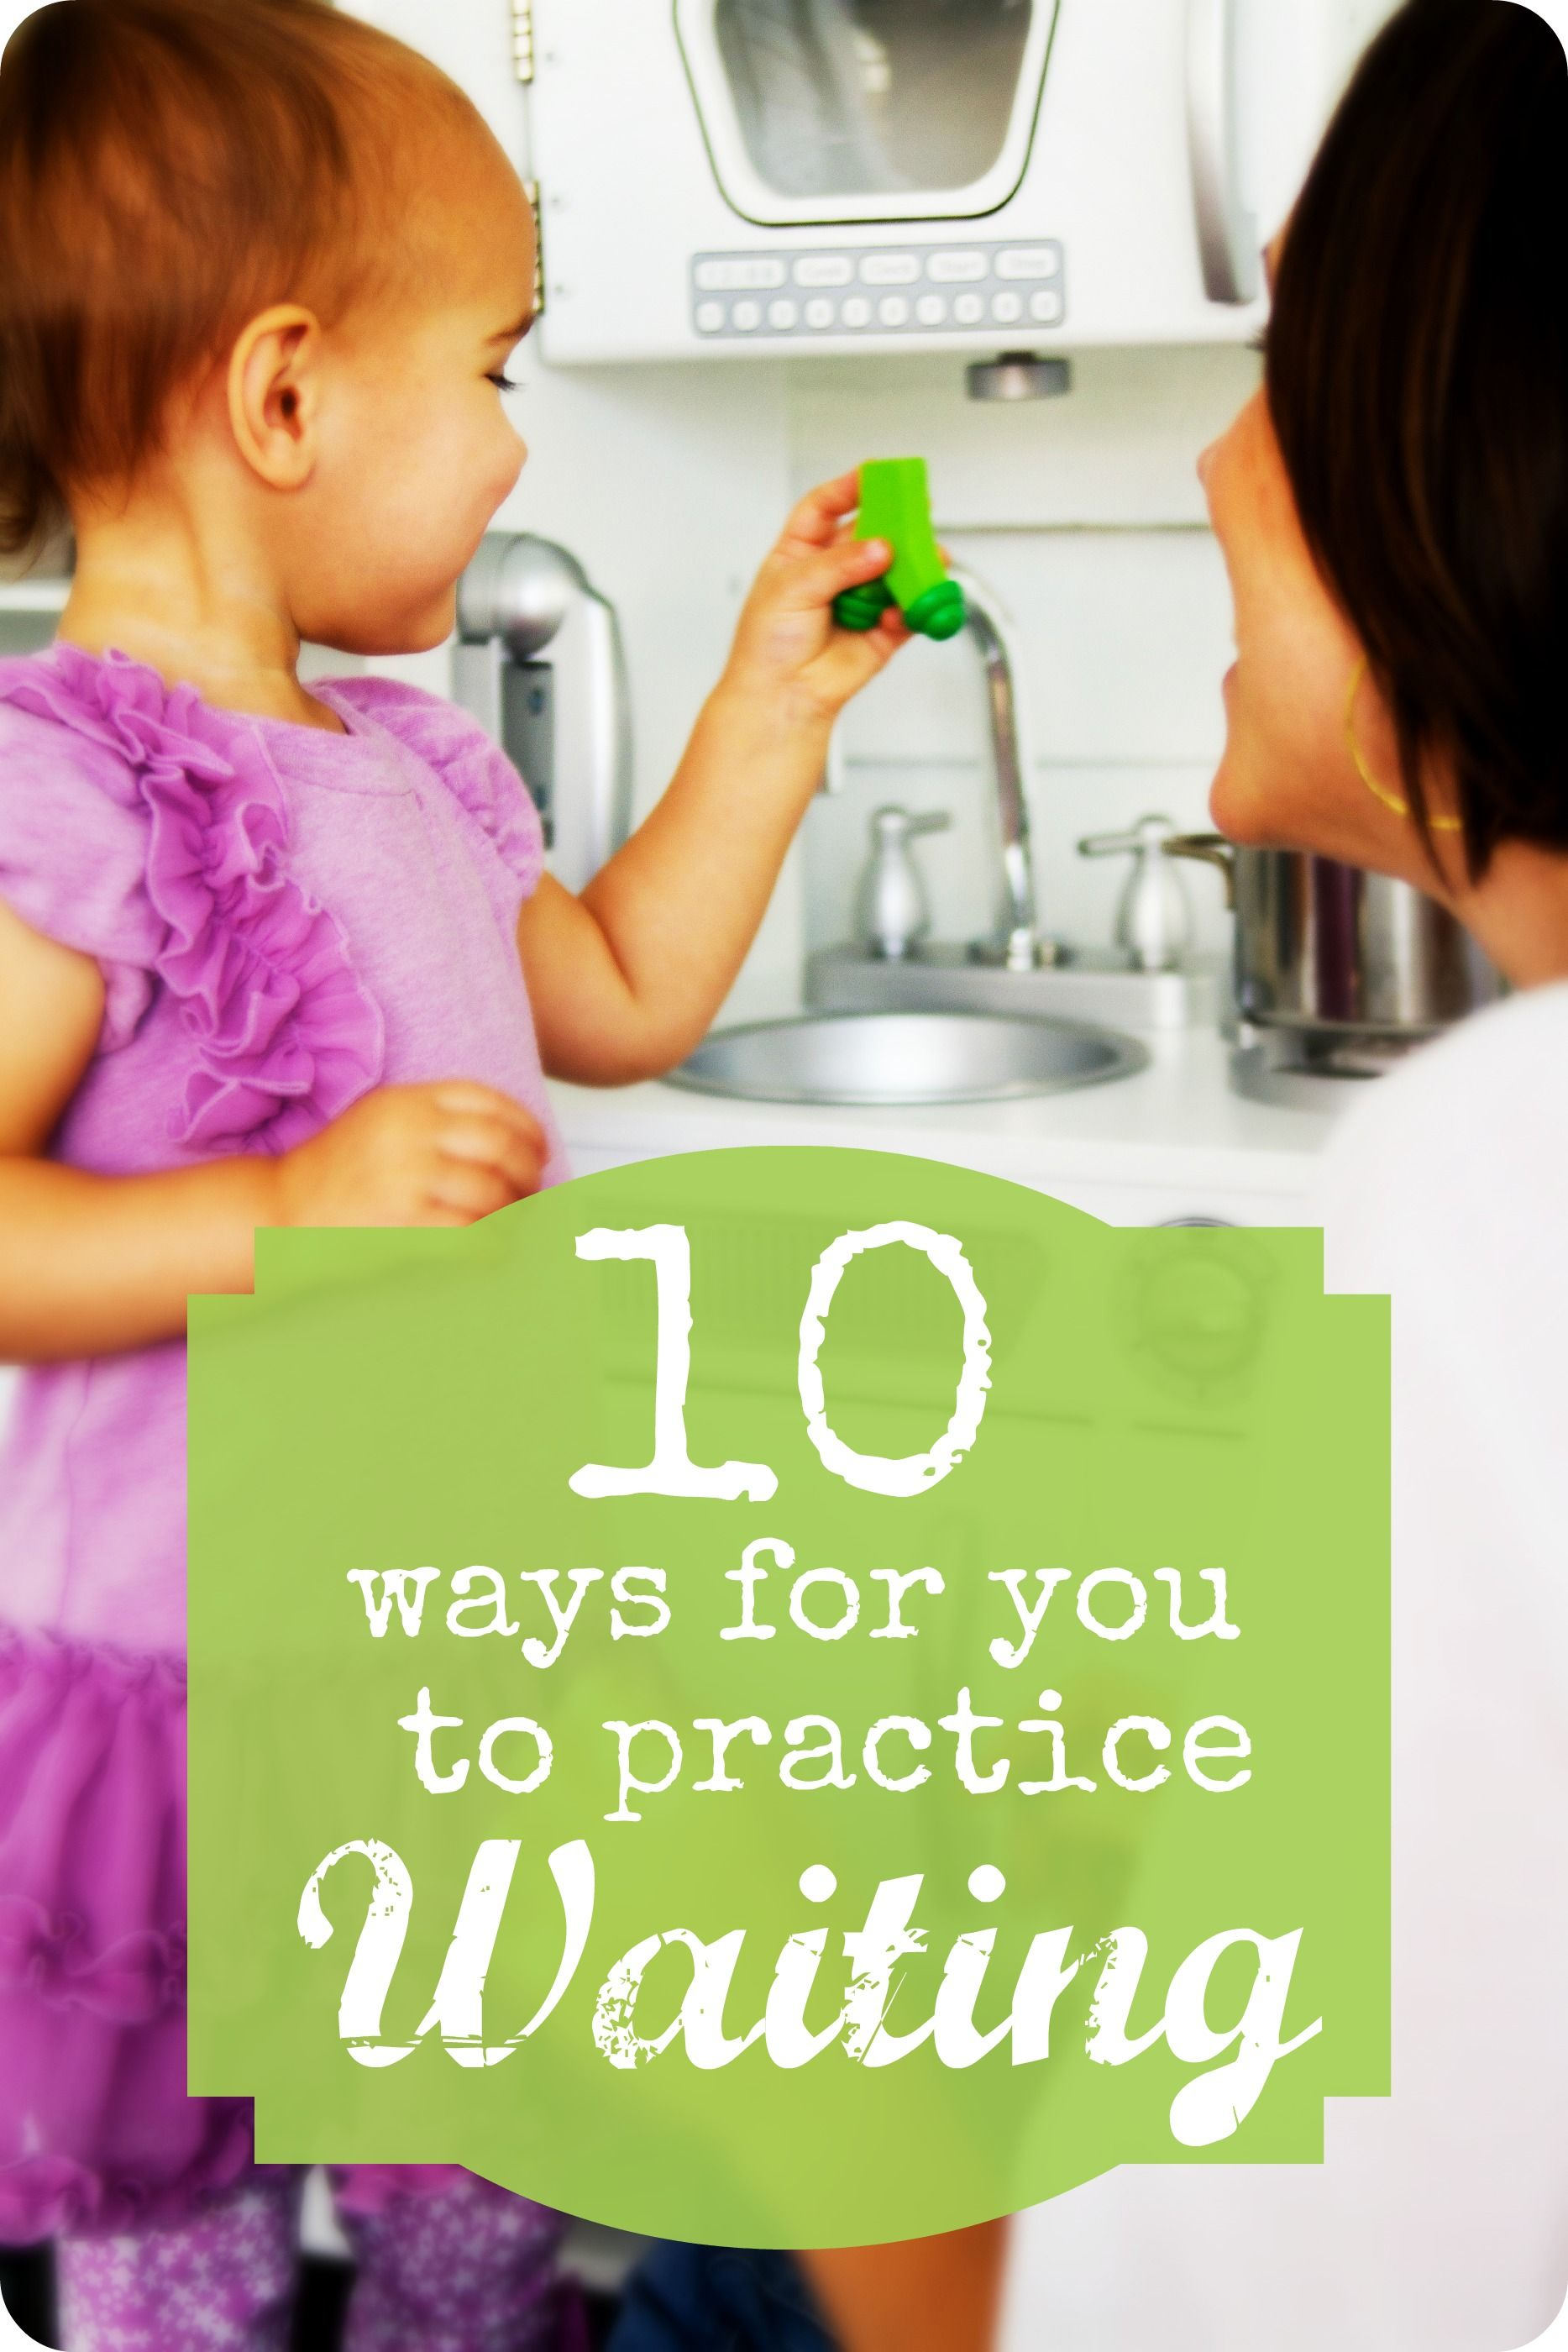 How parents can be great role models and practice waiting too! #parenting #waiting #language